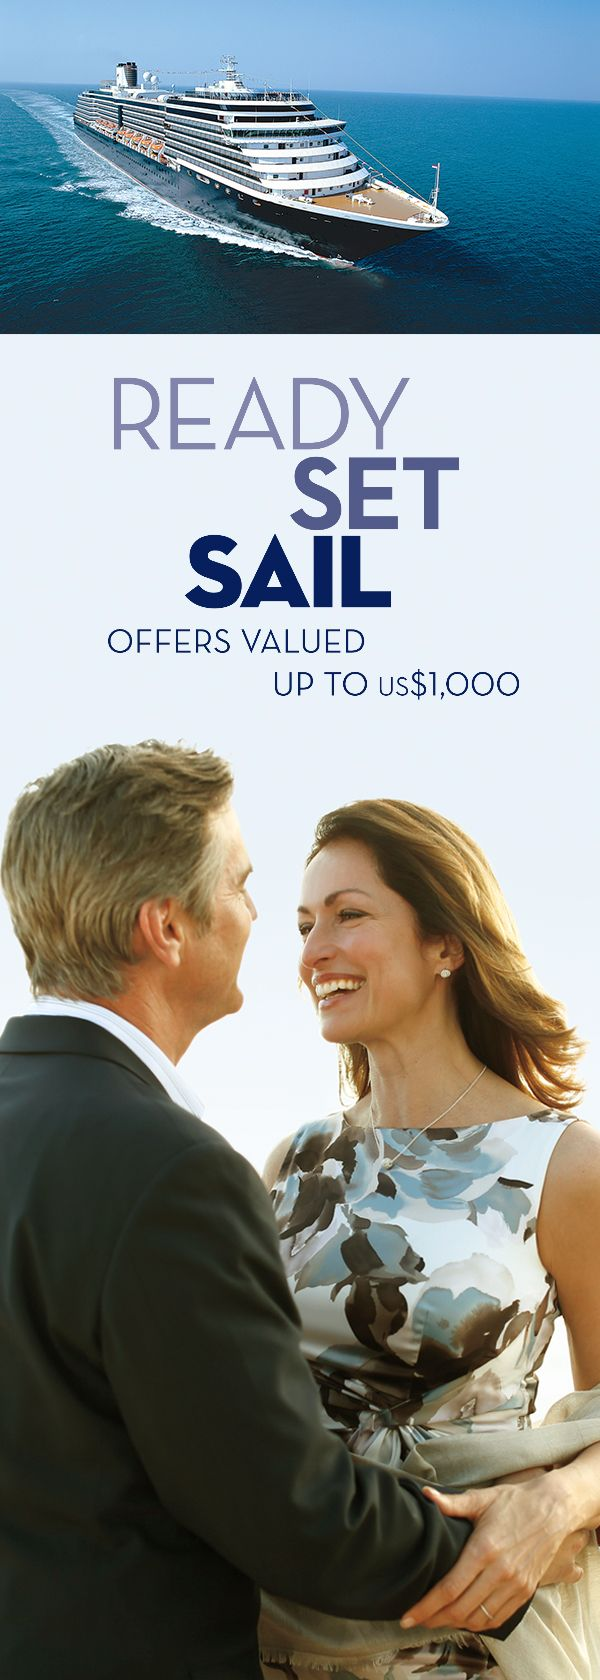 Ready. Set. Sail. Book a select cruise to Europe, Alaska, Canada & New England, Panama Canal, Caribbean, Hawaii, Mexico, South America, Asia, Australia & New Zealand, Bermuda, or Holiday 2017 and recieve up to $500 onboard spending money and more!